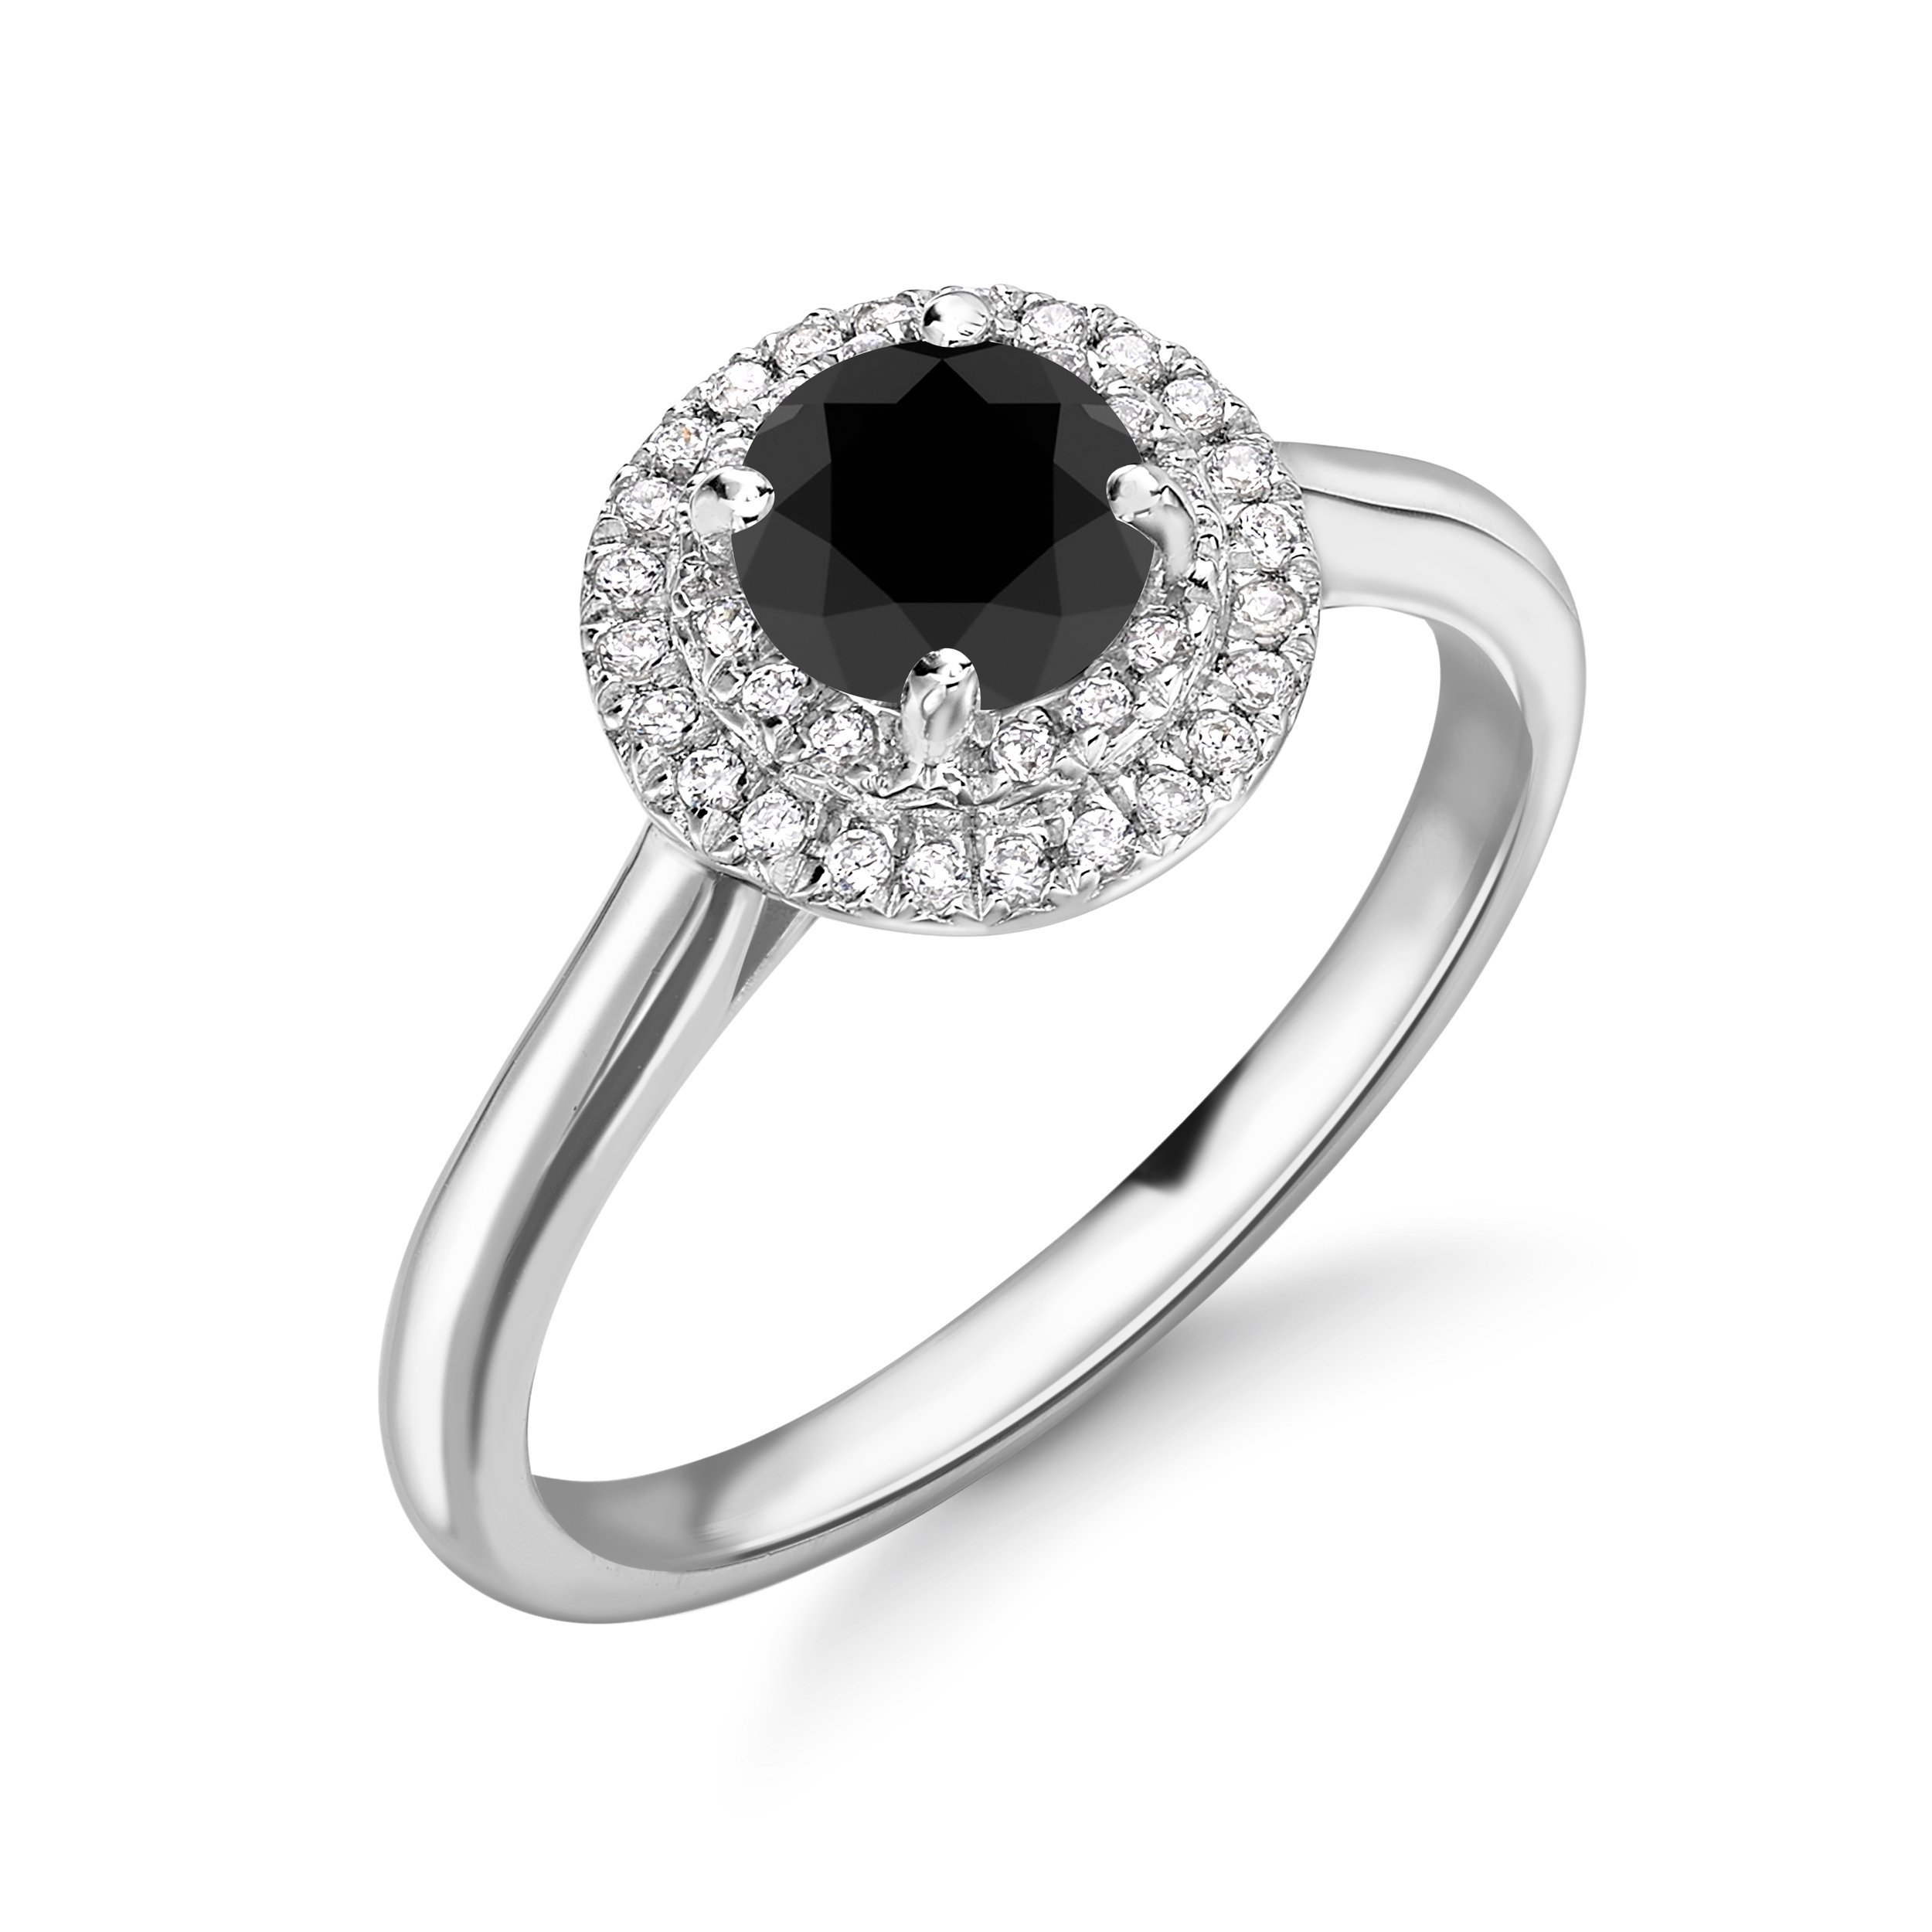 Plain Shoulder Two Raw Halo Luxurious Diamond Black Engagement Rings